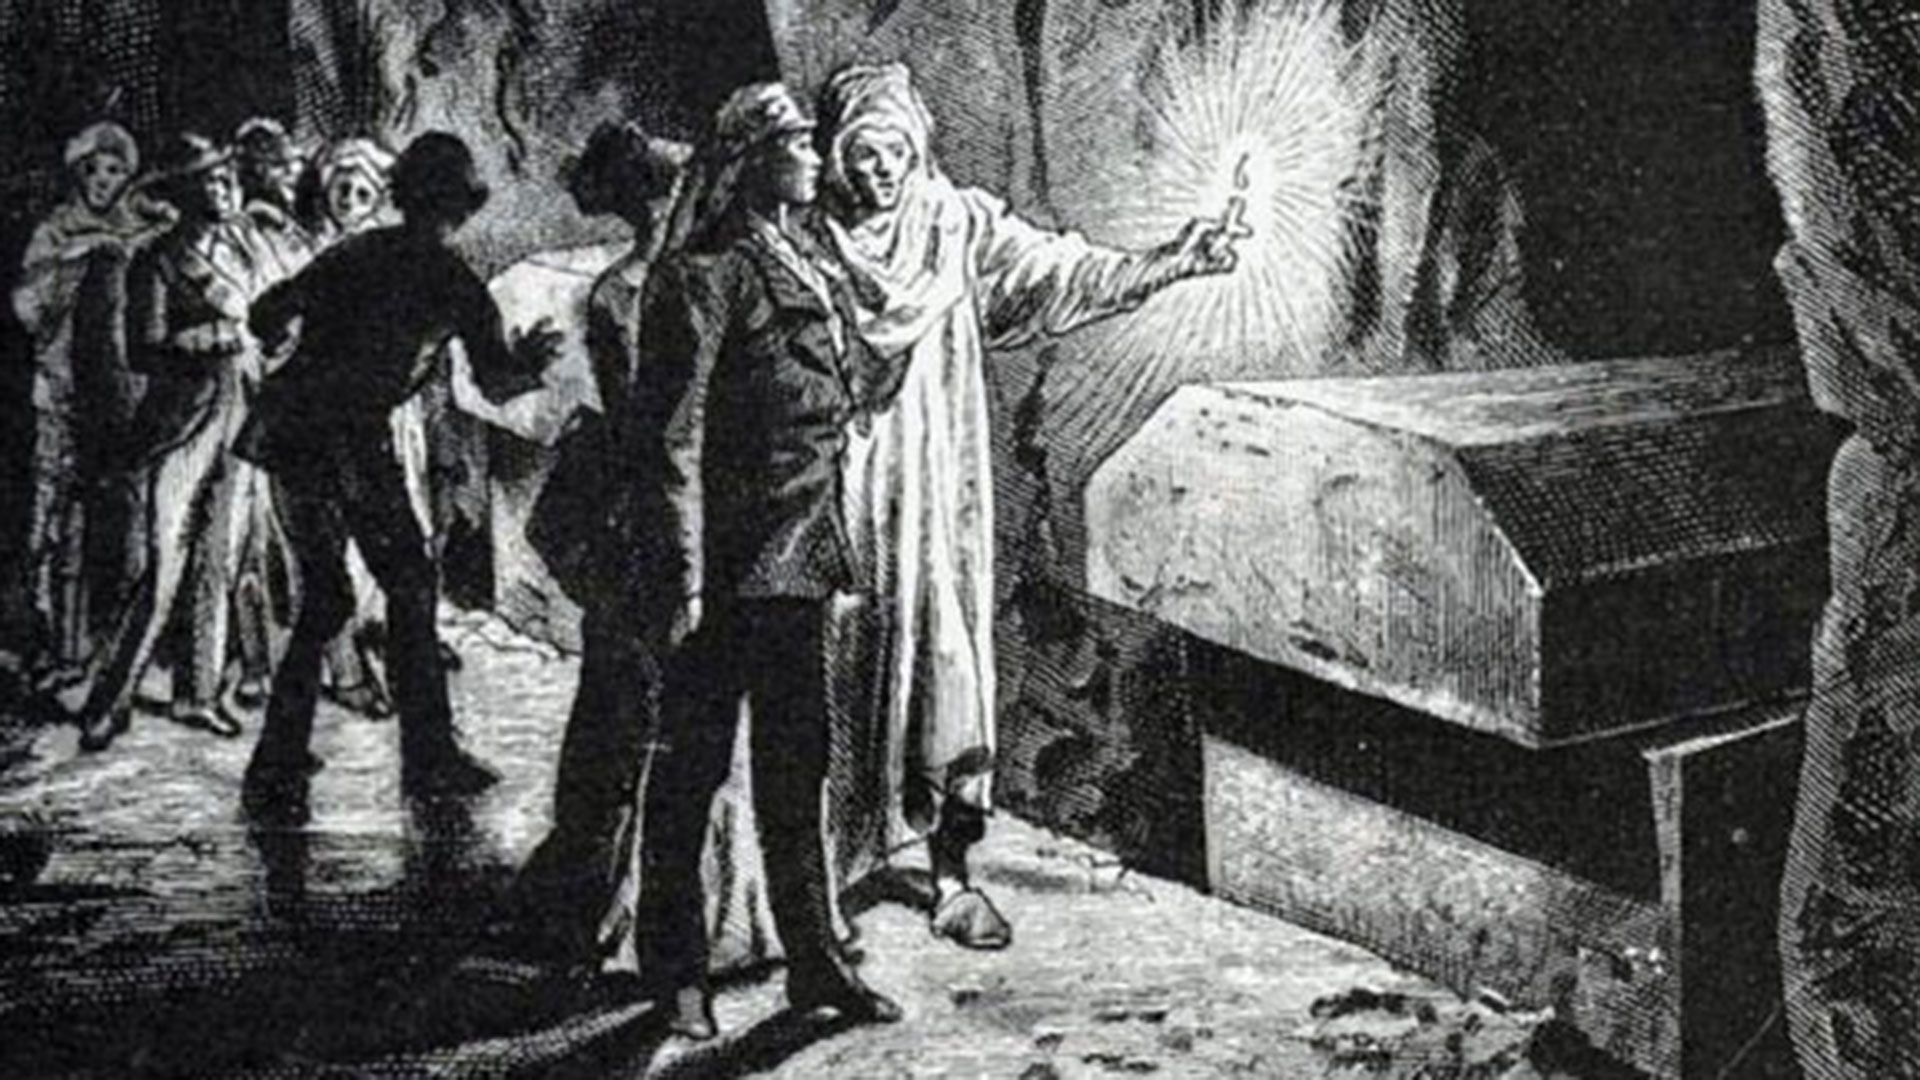 Auguste Mariette wonders: The lids of the coffins are all pushed aside (Historical drawing)